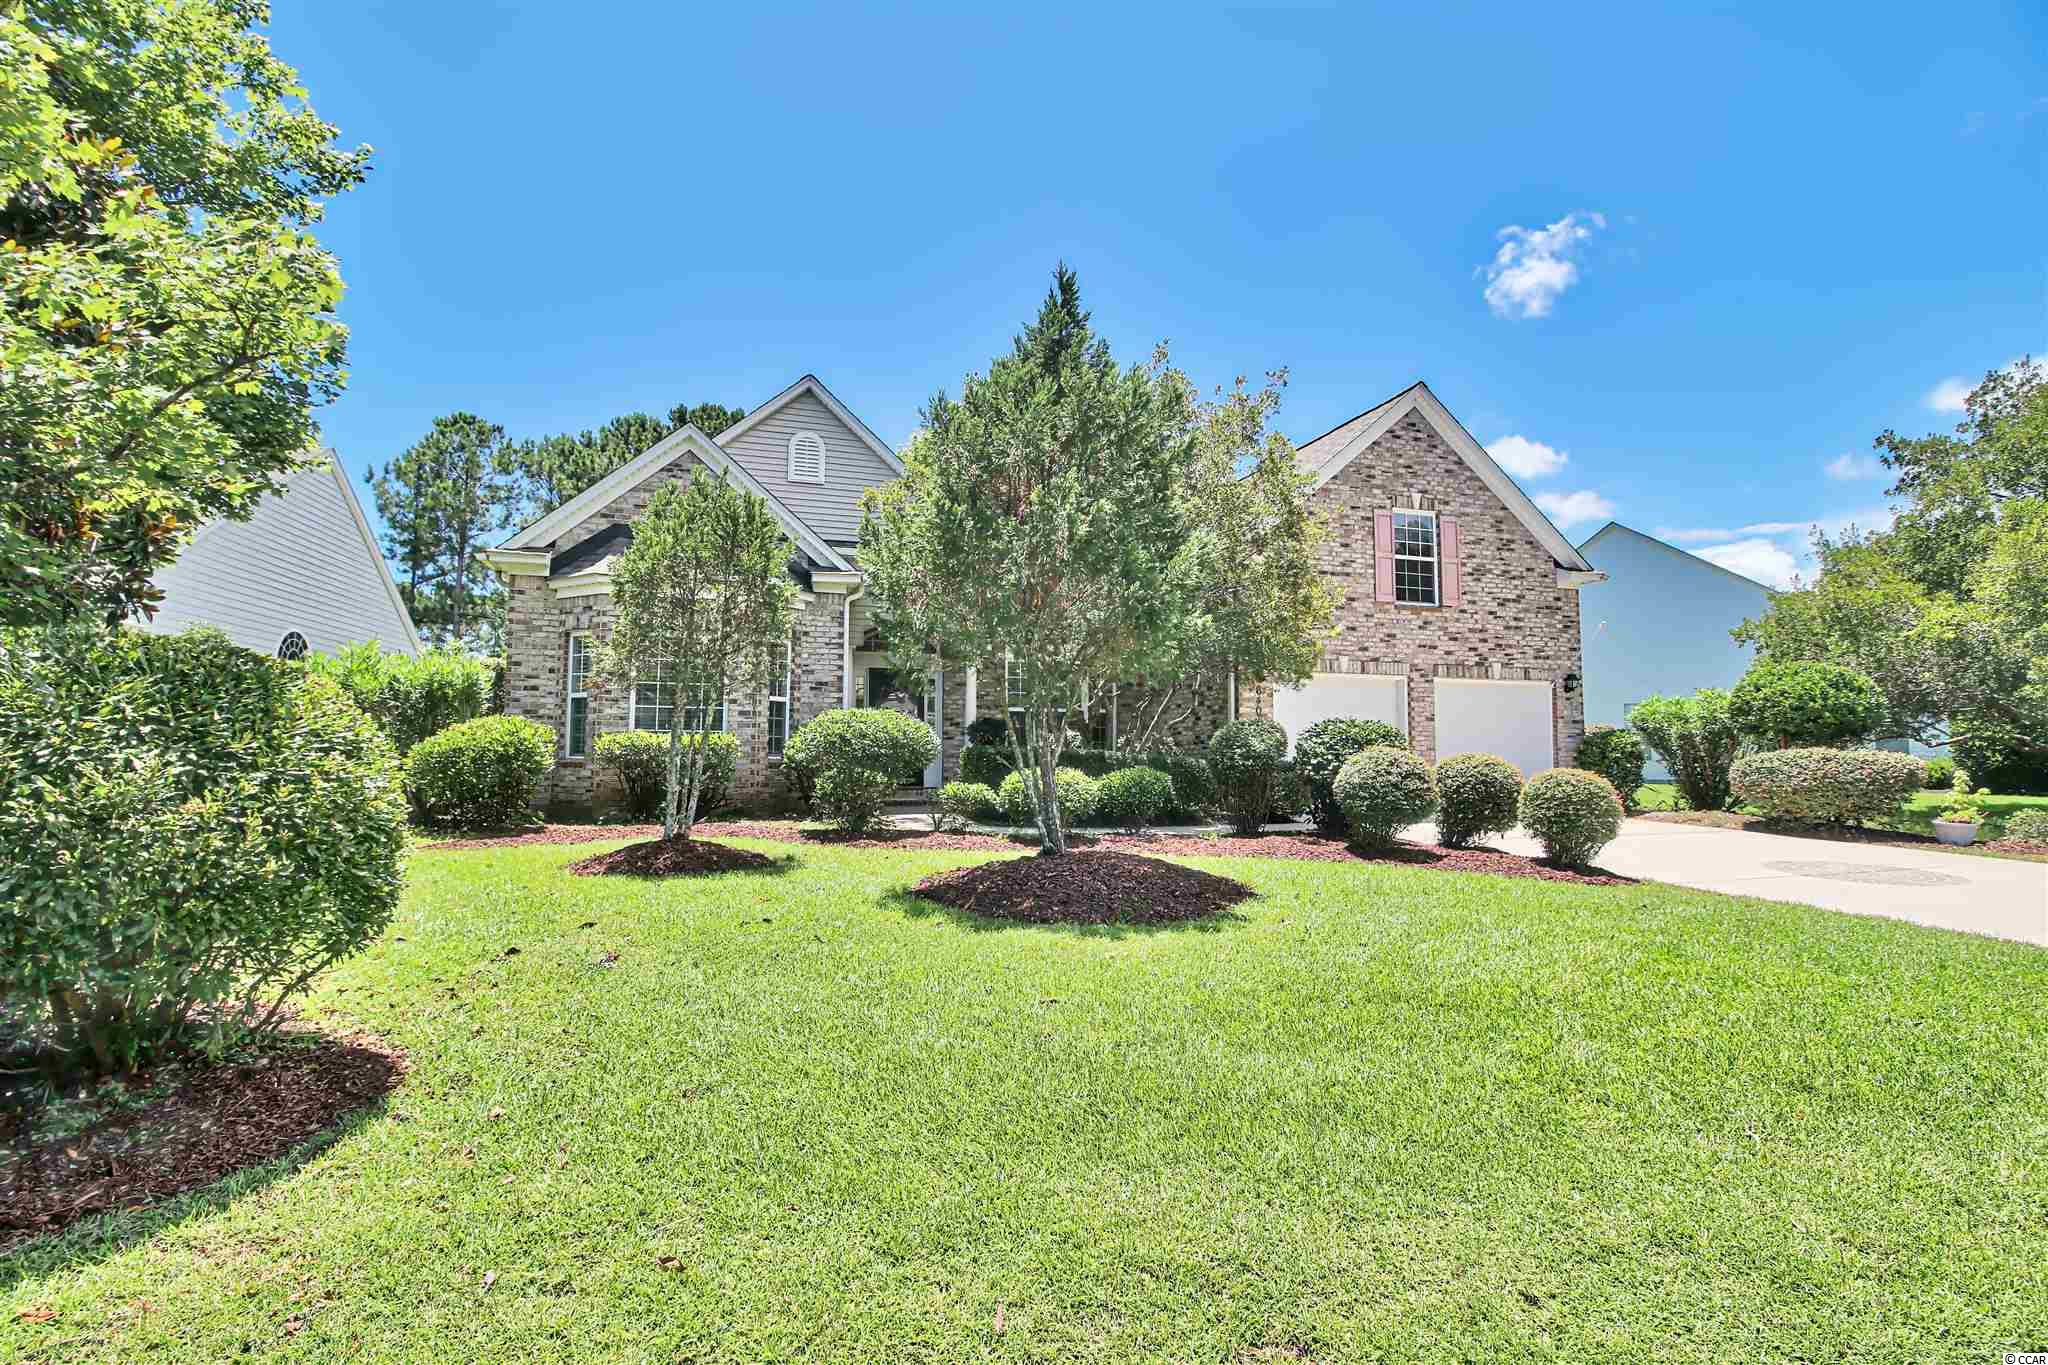 Located within Devonshire at the Longwood Plantation section of Blackmoor in Murrells Inlet, this fabulous 4 bedroom, 3 1/2 bath home sits on a large lot backing up to the central lake of the neighborhood. A new roof (2019) and a new HVAC system (2017), along with a newly serviced, fully functional irrigation system, adds to the spectacular features of the home.  The open concept includes a large foyer leading to the living room, kitchen, and dining room. There are also two master suites complete with full bathrooms and walk-in closets.  One of the master suites has access to the huge screened porch and a spa-garden tub in the bathroom as well dual vanities.  There are two additional bedrooms sharing a full bathroom and one of the bedrooms can be used as an office. The laundry room (washer and dryer convey) is located off the kitchen and leads to the two car garage. The living room is highlighted by a fireplace and fifteen foot ceilings.  The kitchen has solid surface countertops, stainless steel appliances, a work island, a breakfast bar, and a breakfast nook. The patio, located off the Screened porch, opens up to the scenic backyard and overlooks the lake. Blackmoor is just minutes away from Murrells Inlet's famous Marsh Walk, Huntington Beach State Park, Brookgreen Gardens, Wacca Wache Marina, and 15 miles to Myrtle Beach International Airport. The community backs up to the Waccamaw River and includes a Gary Player signature championship golf course, community clubhouse, pool, tennis/pickleball/basketball courts, and children's playground